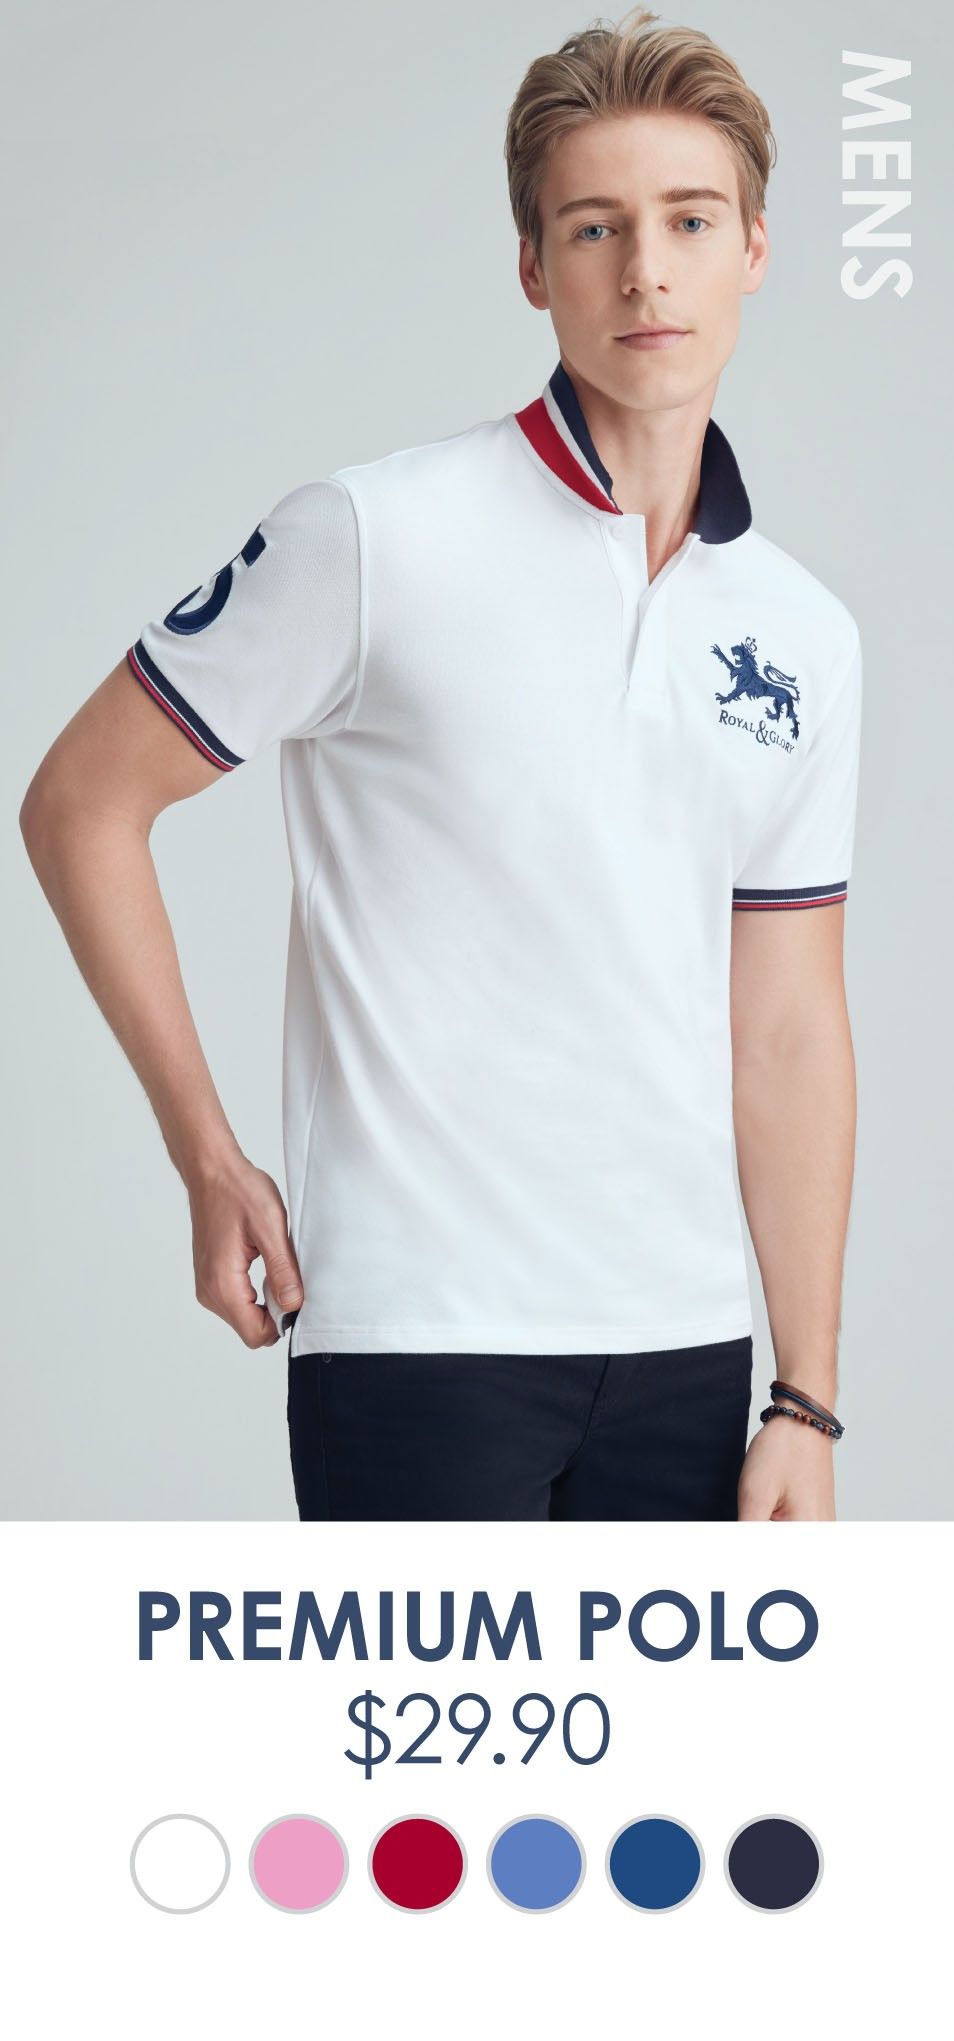 Premium polo_Lookbook_R1